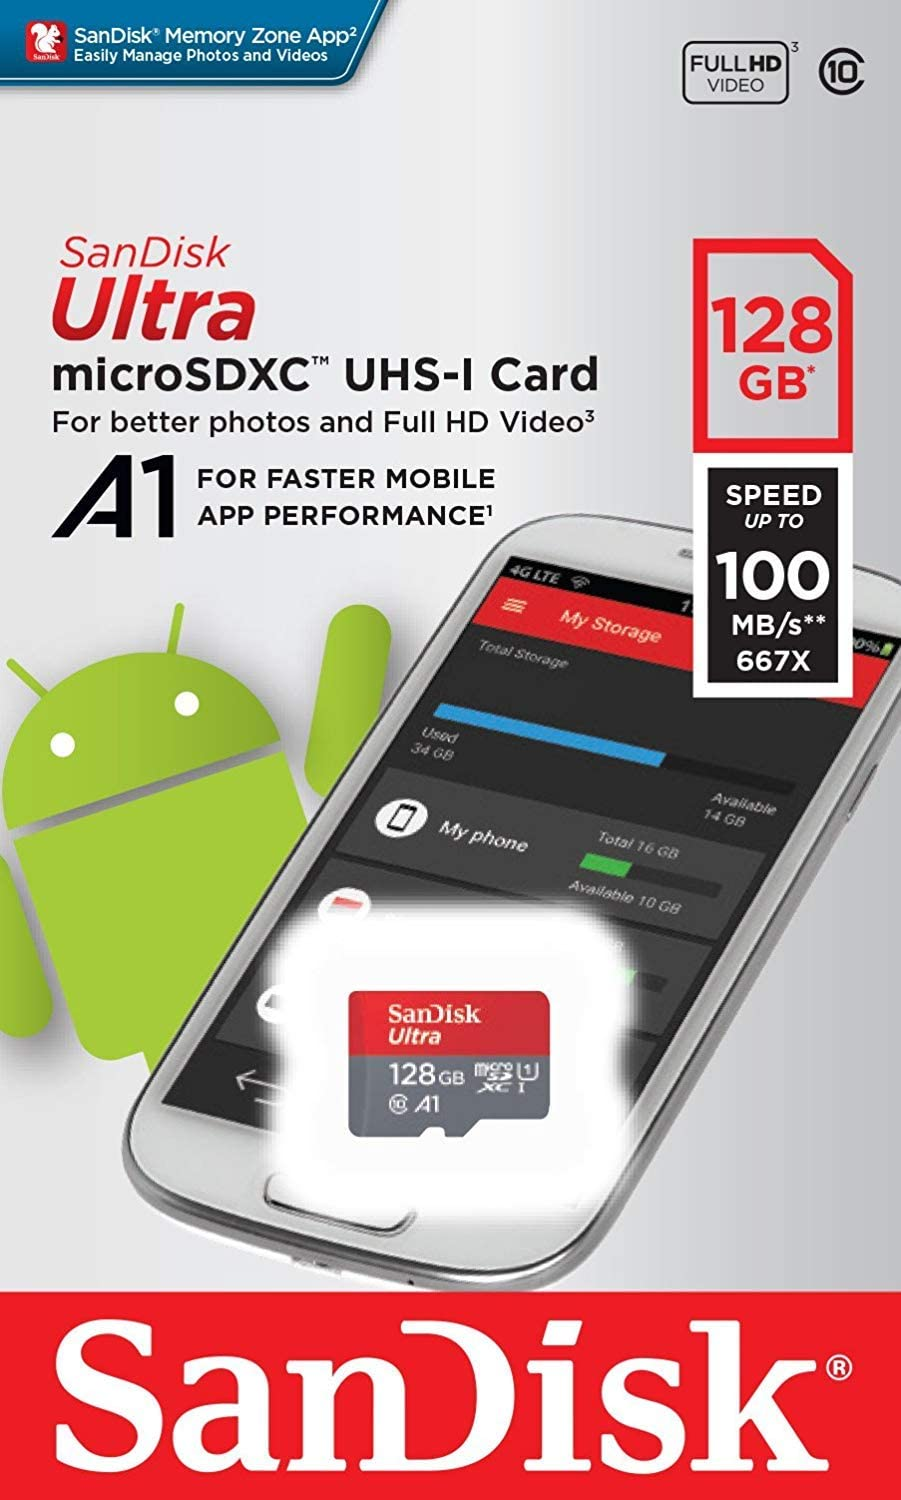 100MBs A1 U1 Works with SanDisk SanDisk Ultra 128GB MicroSDXC Verified for LG L Prime by SanFlash